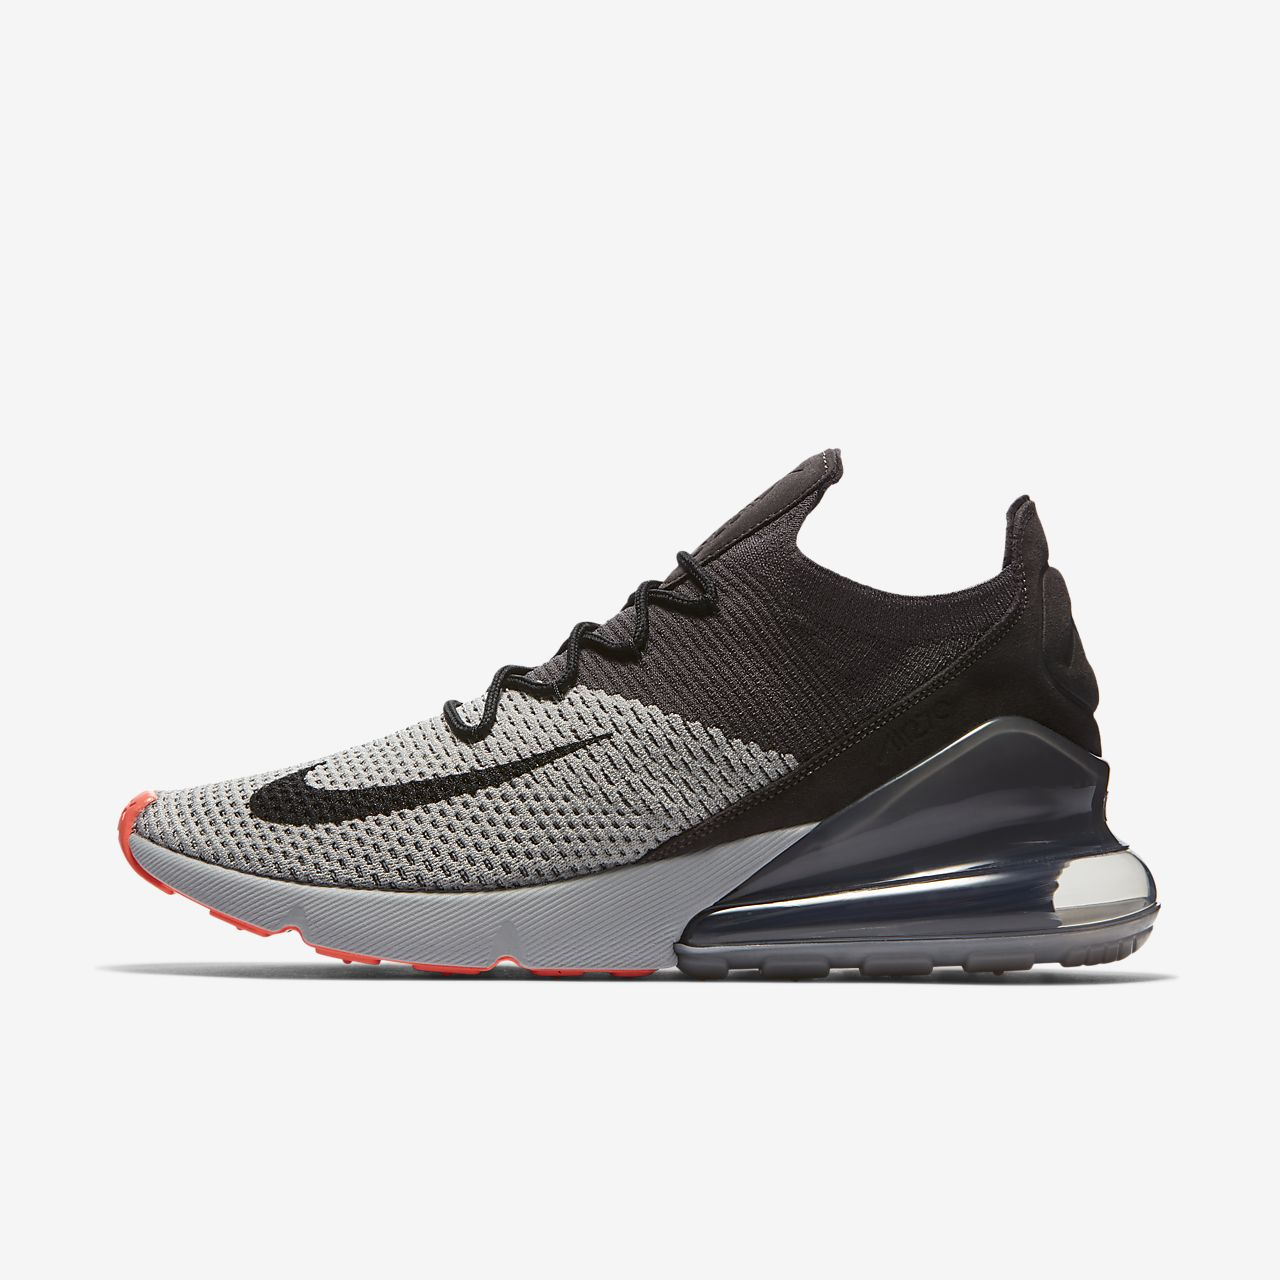 finest selection b70ae 974f9 ... Nike Air Max 270 Flyknit Men s Shoe